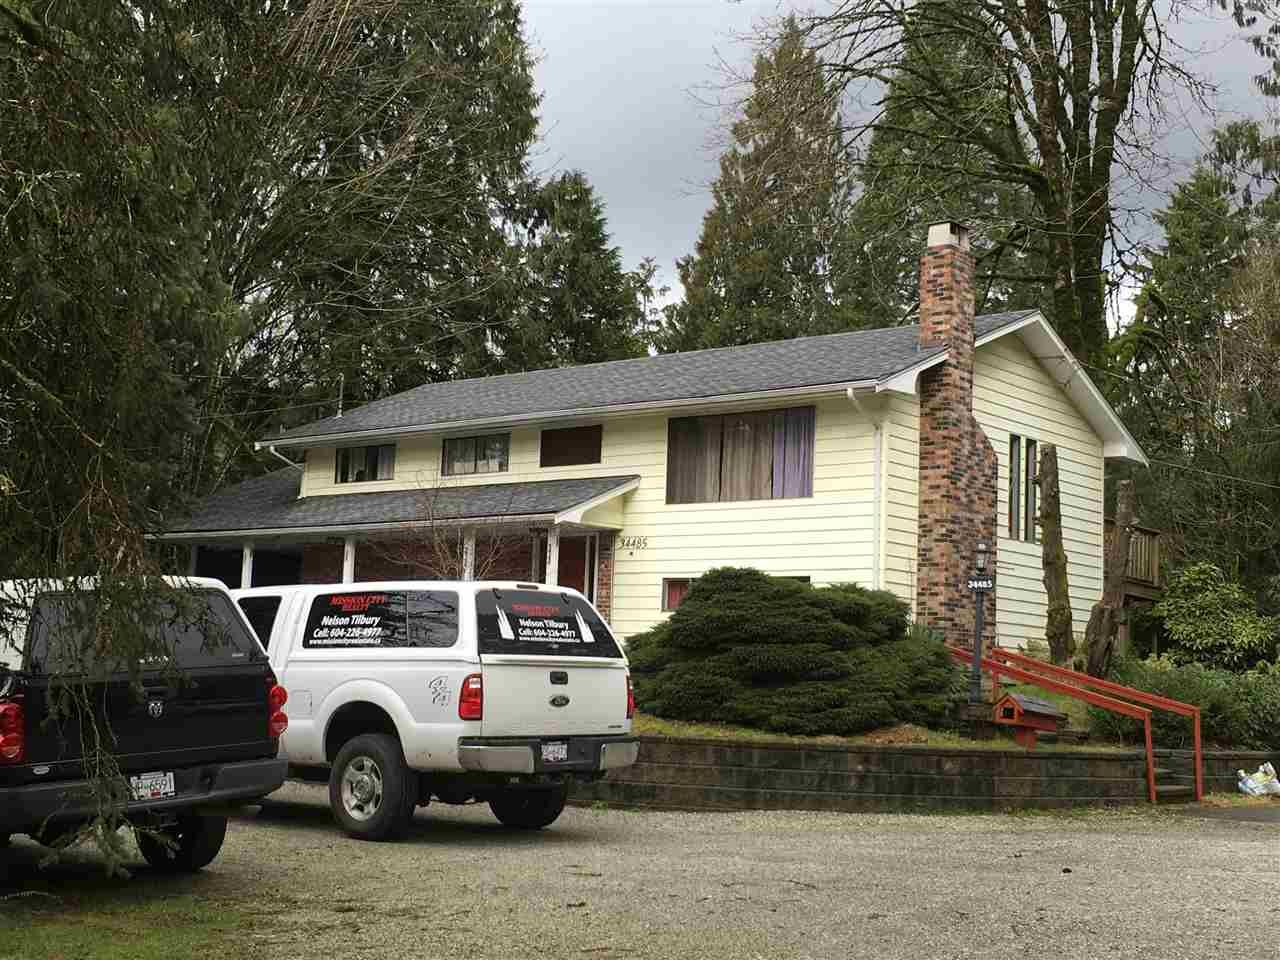 Main Photo: 34485 KIRKPATRICK AVENUE in Mission: Mission BC House for sale : MLS®# R2033667